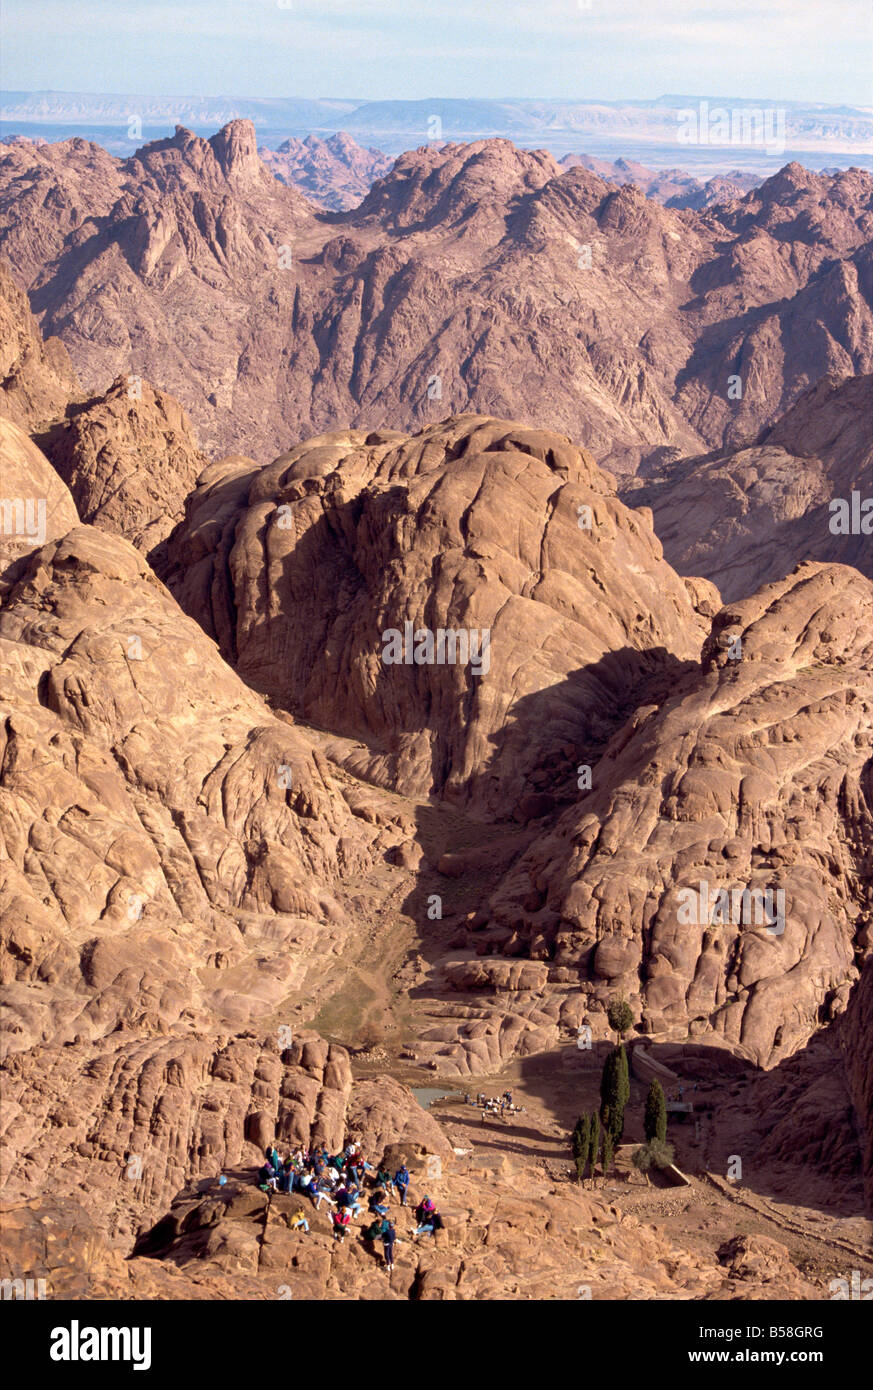 Christian pilgrims at prayer in the granite landscape of Mount Sinai and Mount Moses Egypt North Africa Africa - Stock Image